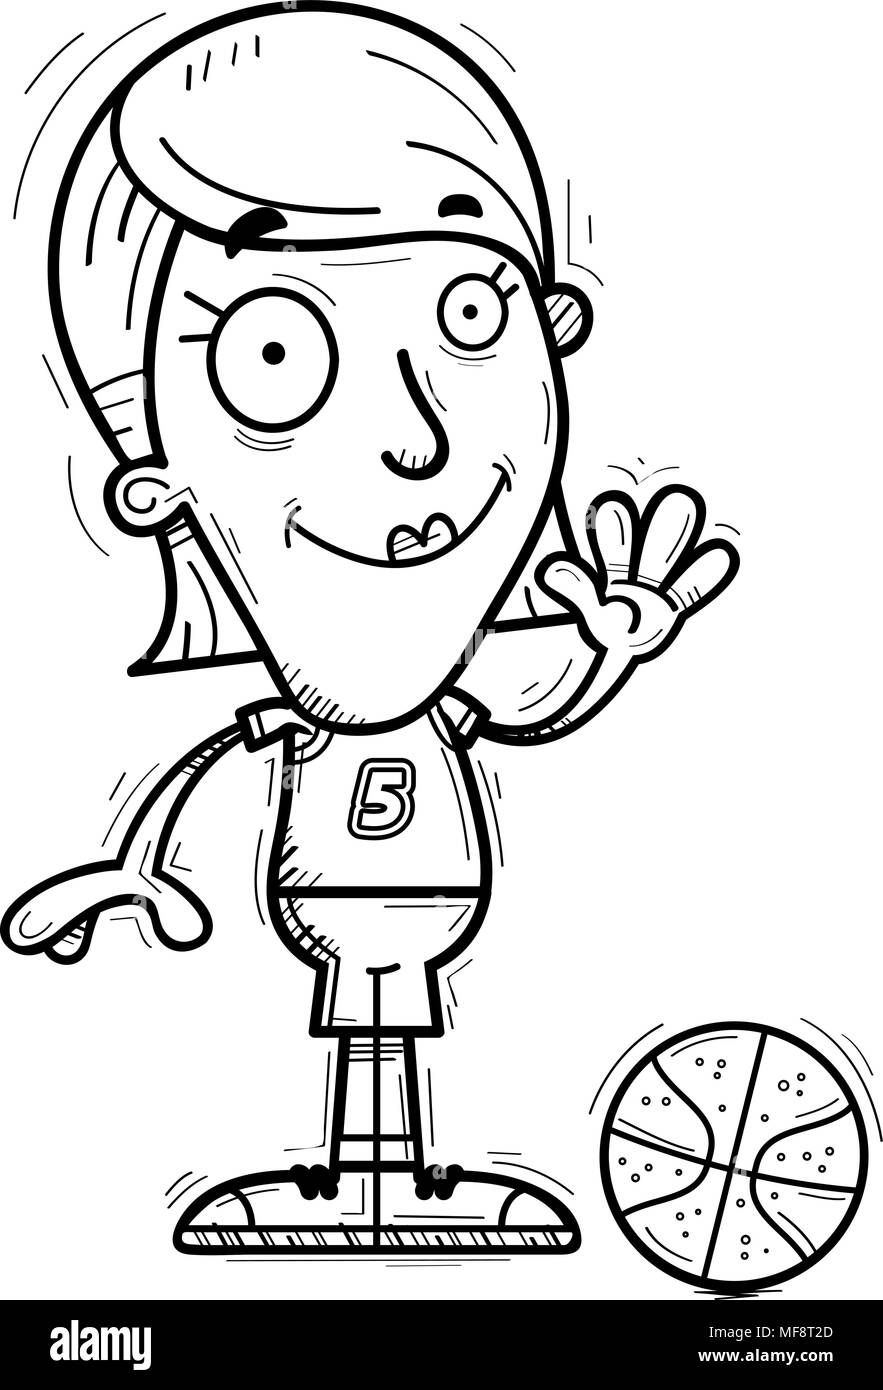 A cartoon illustration of a woman basketball player waving. - Stock Image